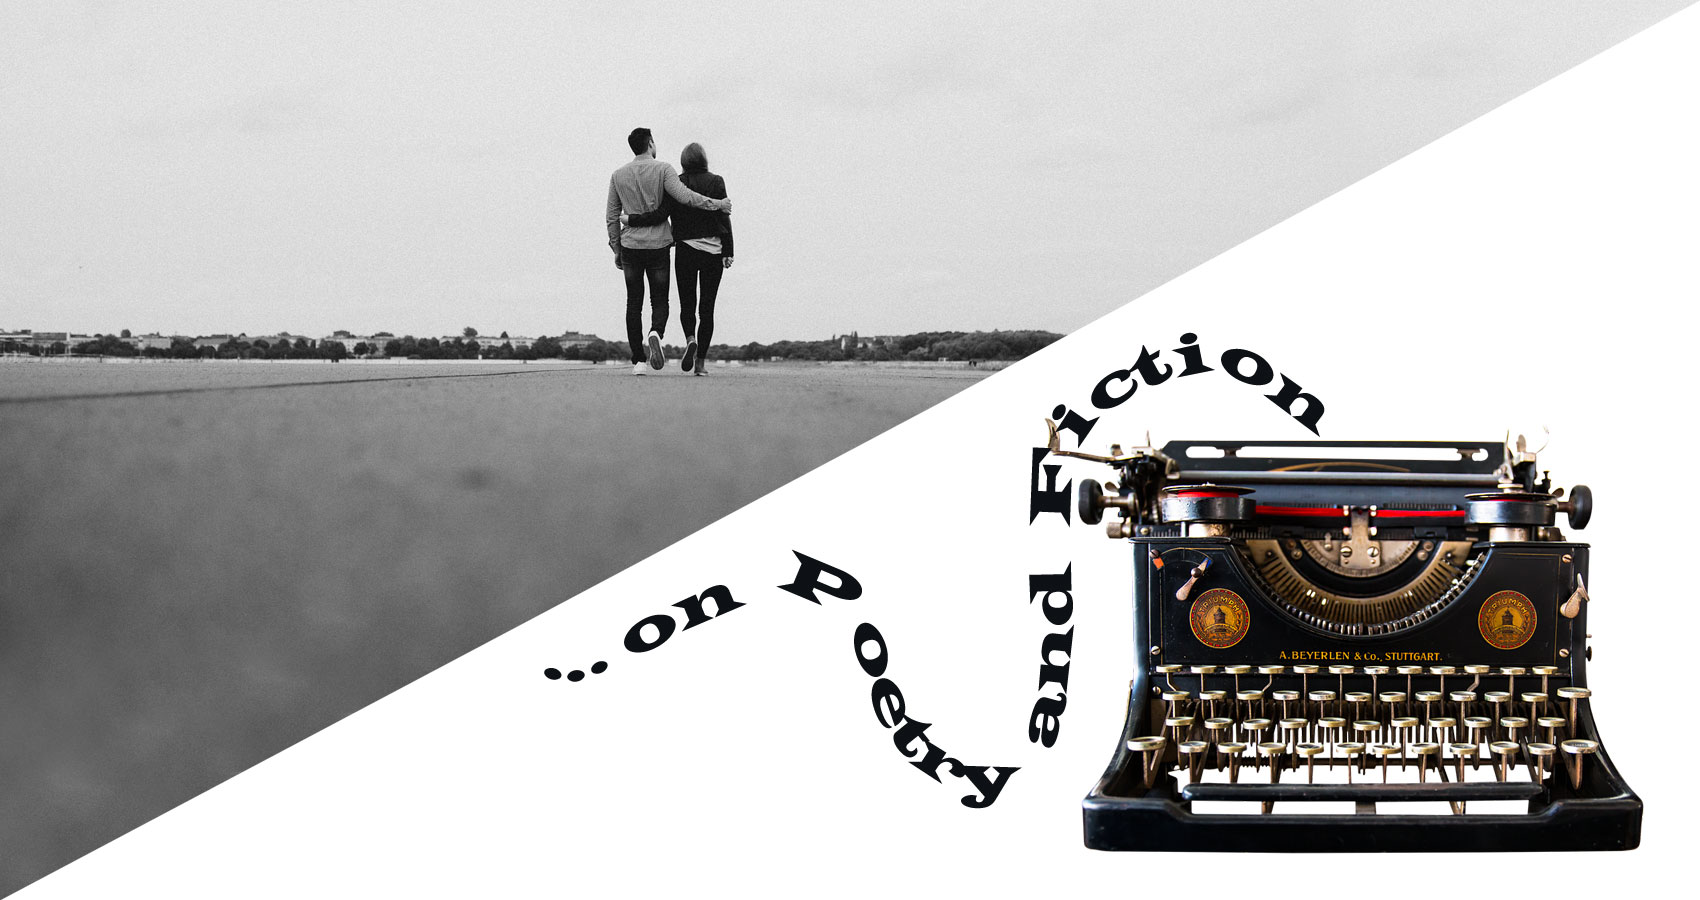 """...on Poetry and Fiction - """"Voices"""" and """"Rosalie and Michael (One Special Day)"""" by Phyllis Colucci at Spillwords.com"""